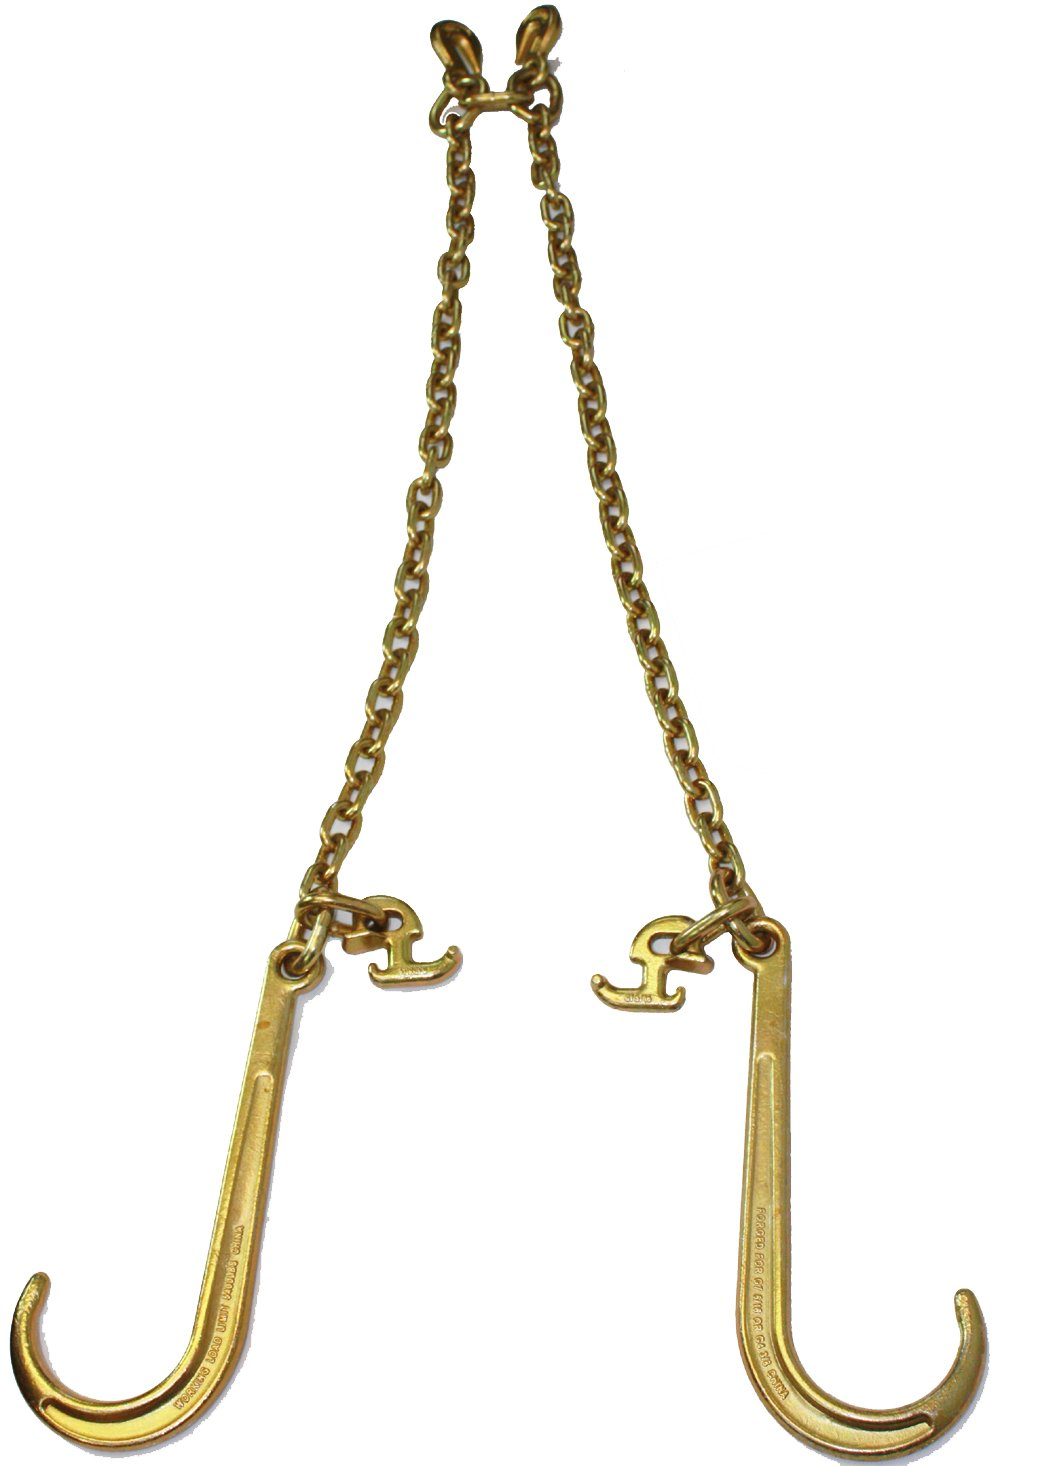 G70 V-Chain Bridle w/ 15'' Large J Hooks, TJ Hook and Grab Hooks 3' Legs by Mytee